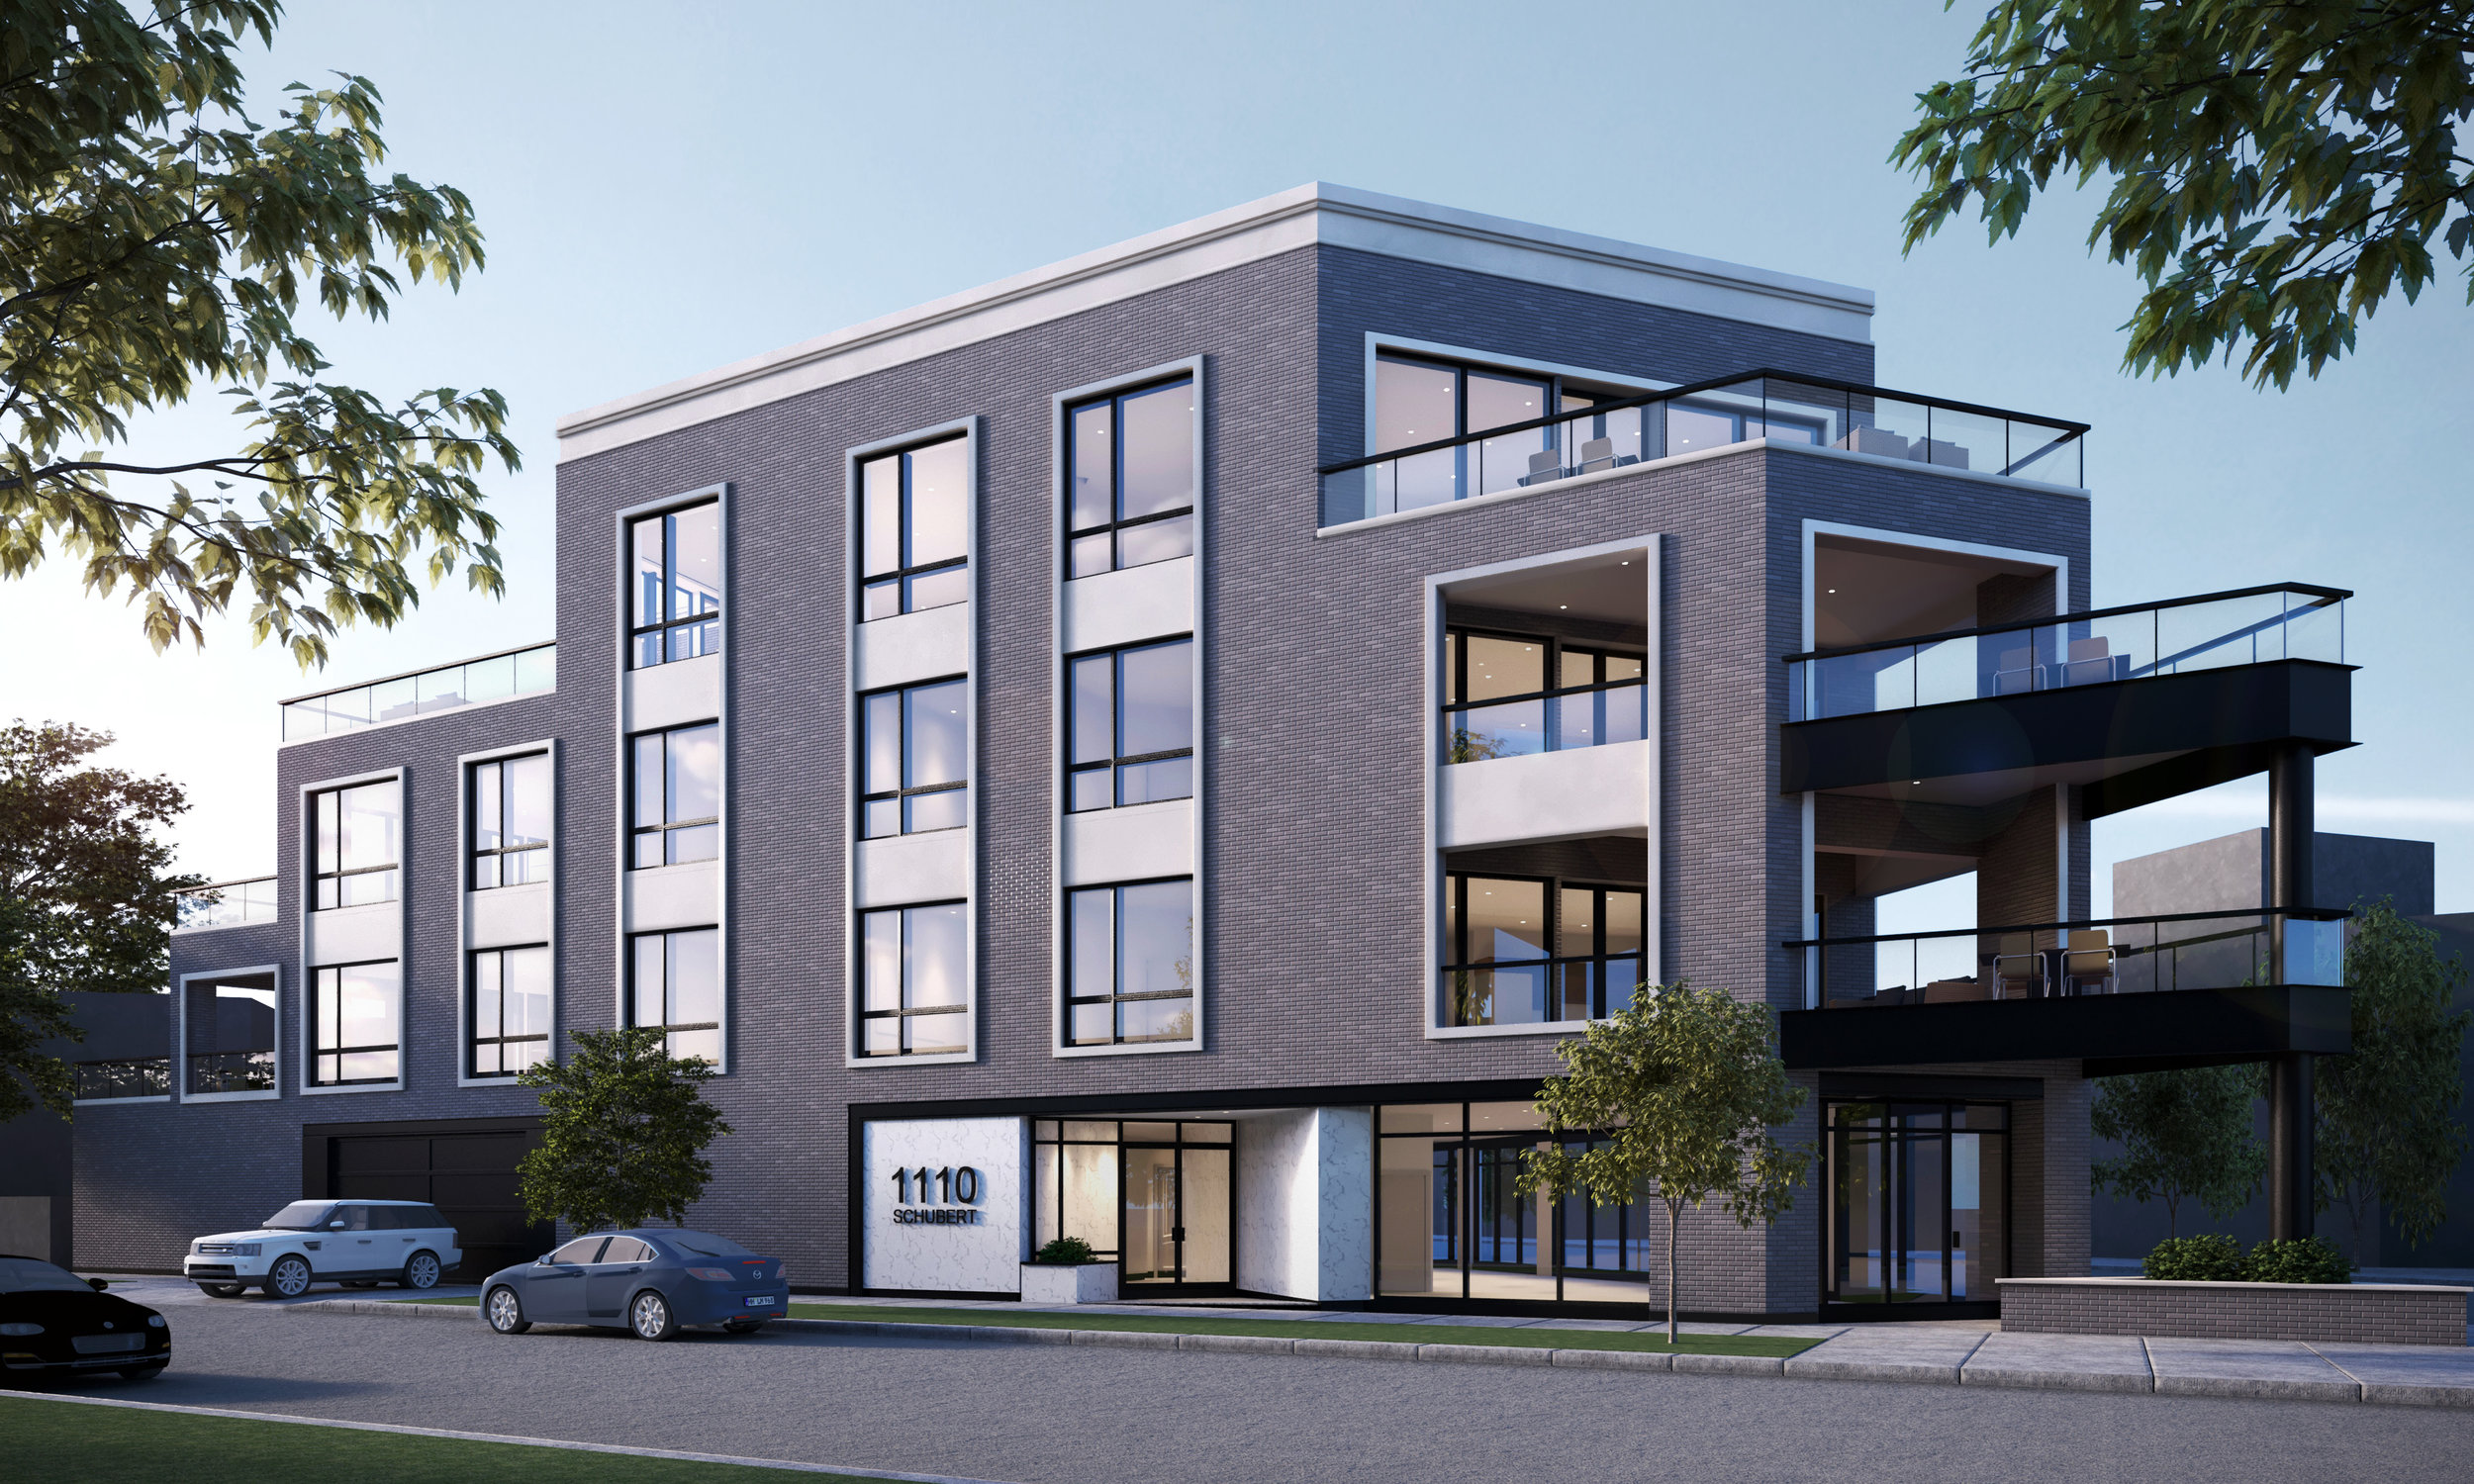 Schubert Pointe - With only 10 distinctive residences, Schubert Pointe is a boutique elevator building offering meticulously designed luxury homes highlighted by expansive outdoor living spaces. Prices ranging from $1,000,000 to $1,650,000. Click below for more details.https://schubertpointe.com/